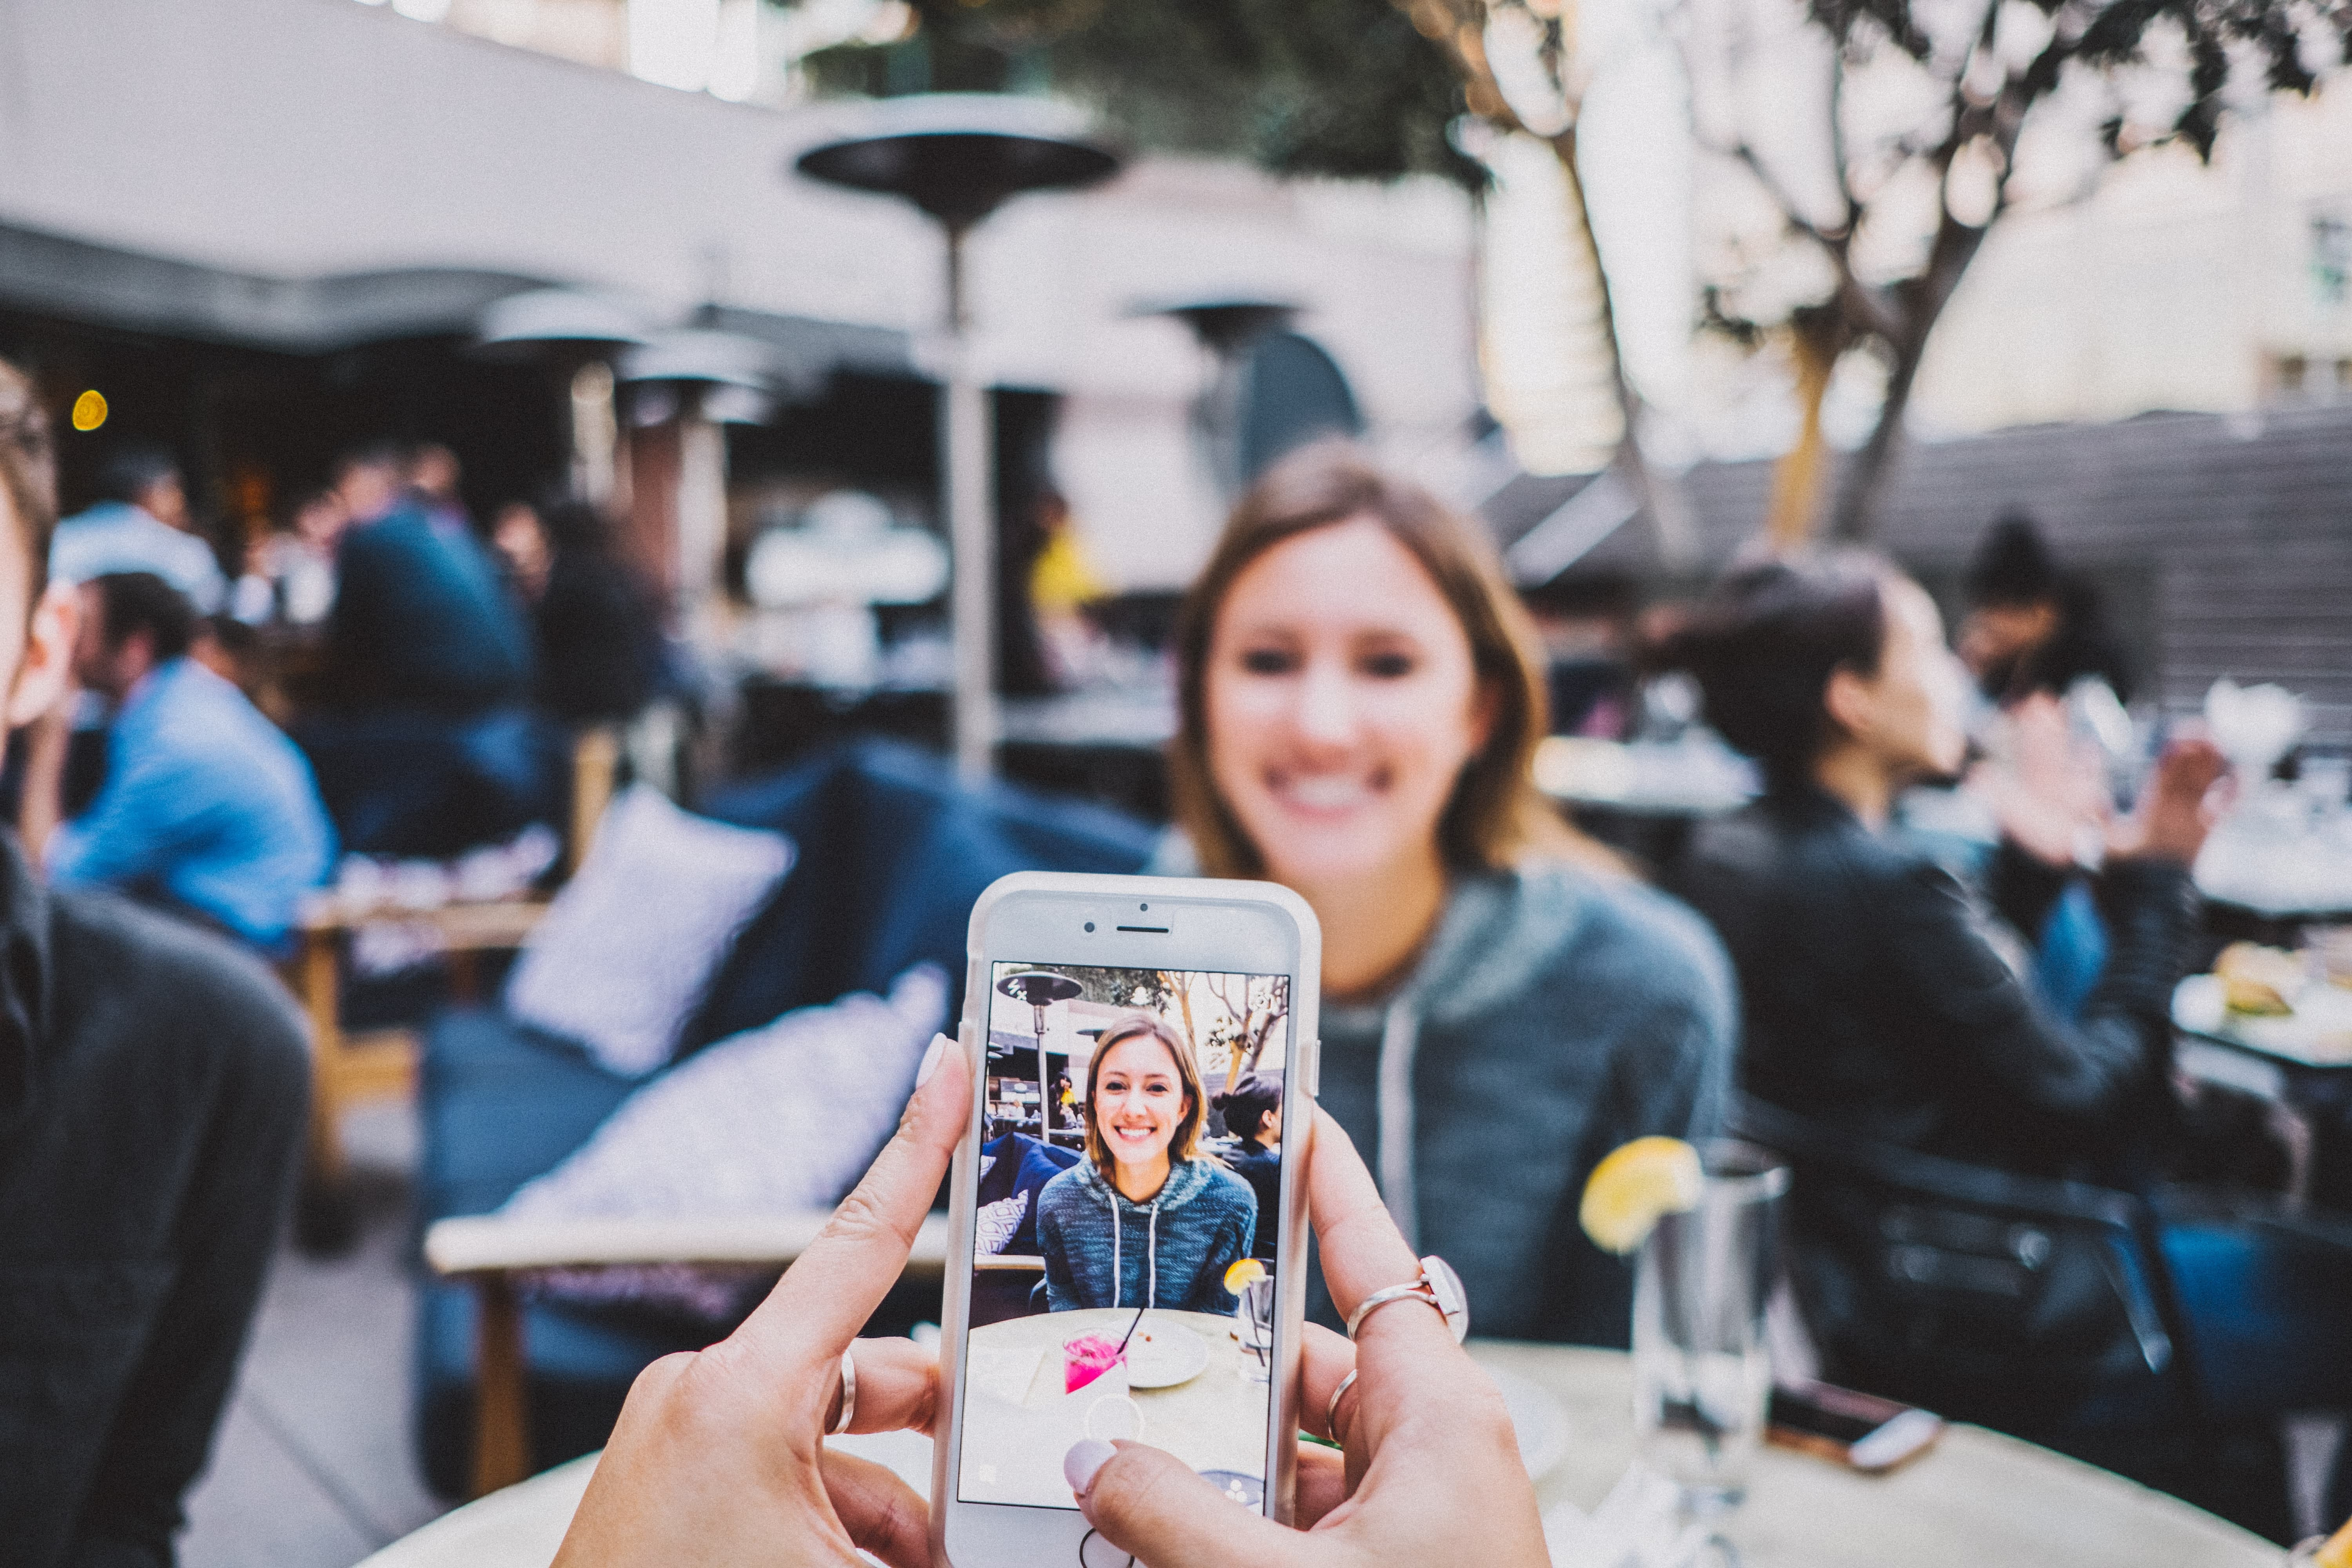 3 Reasons Why Social Media Marketing Is Important for Restaurants